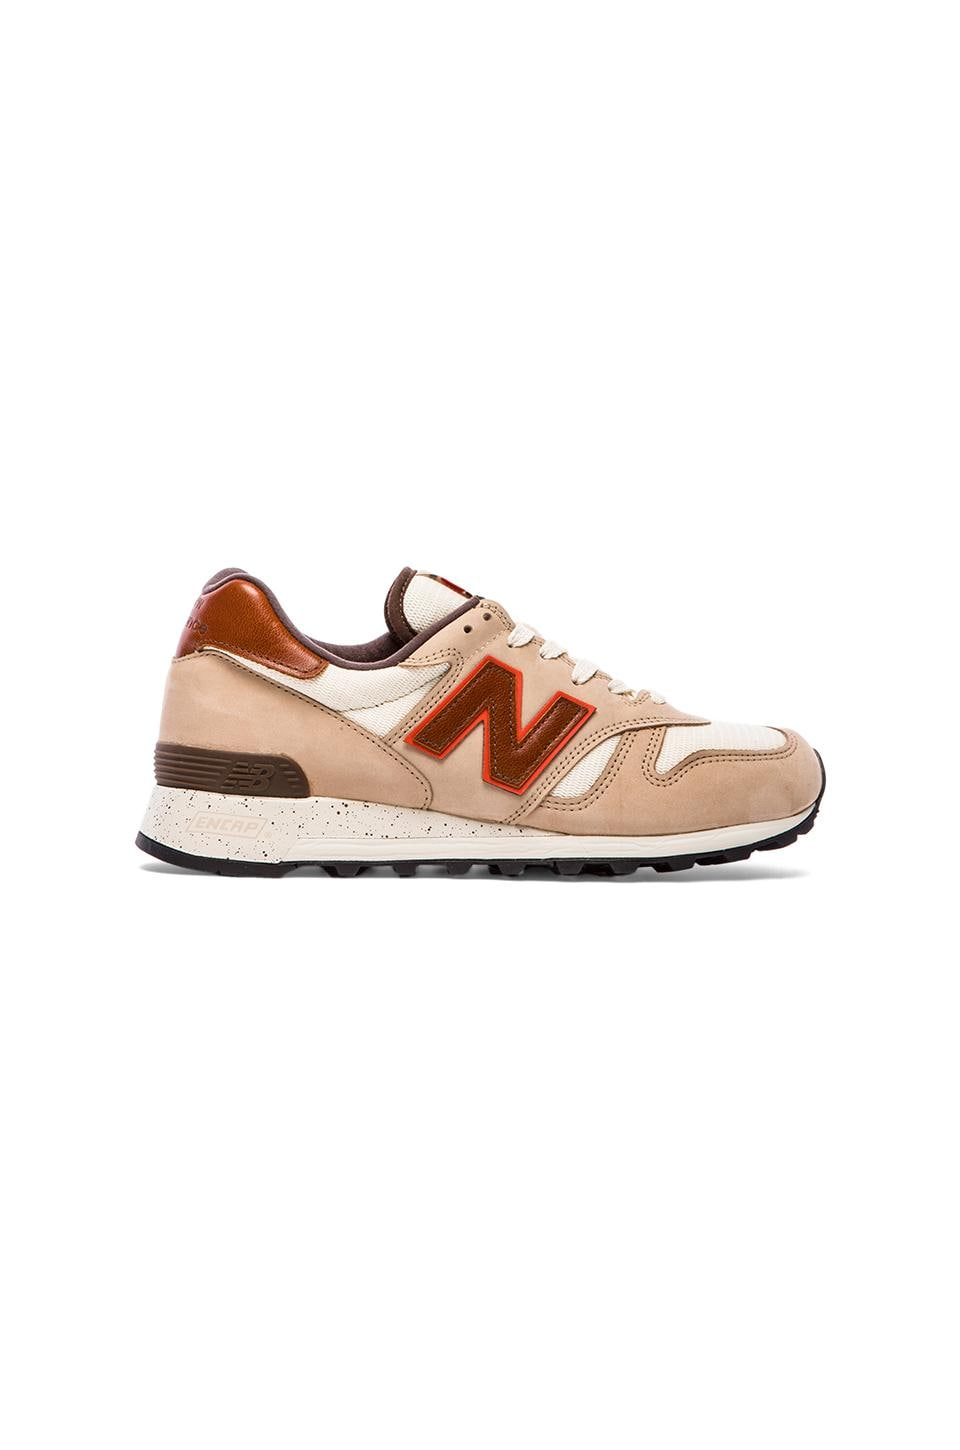 New Balance Made in USA M1300 in Tan & Brown